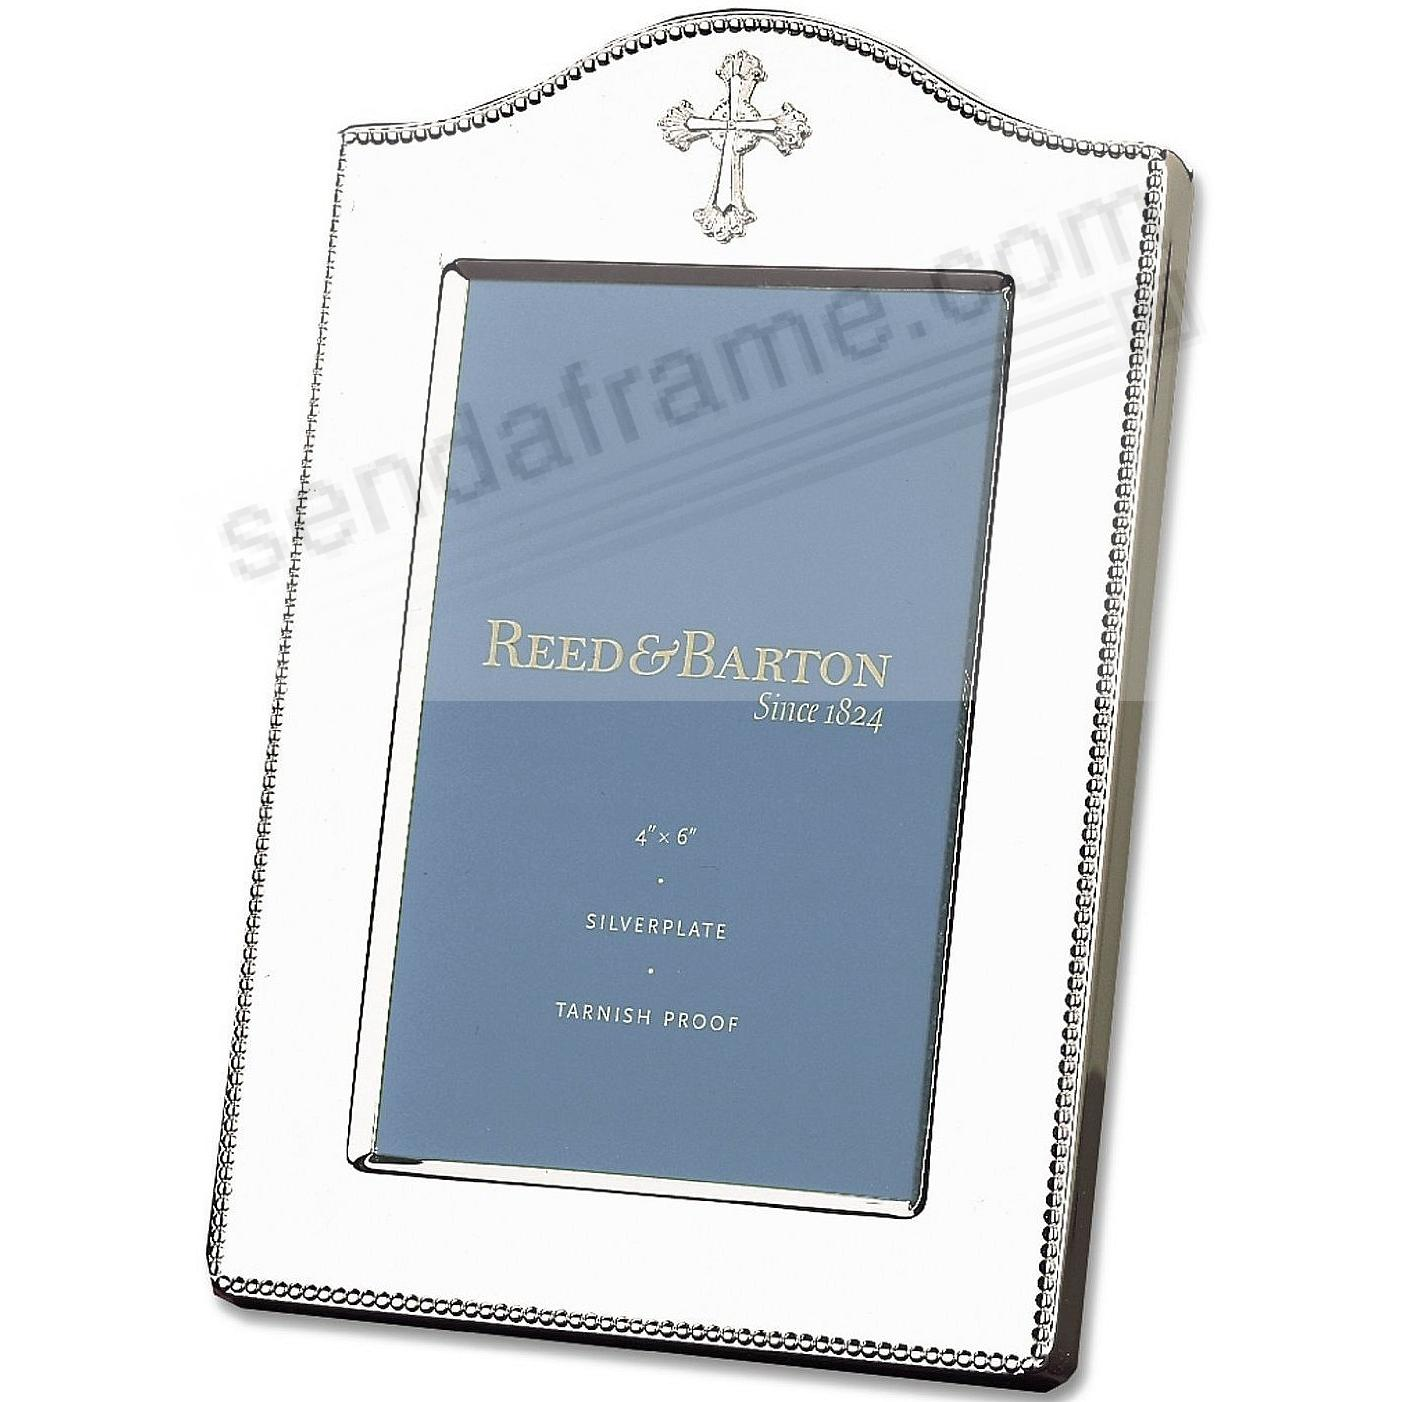 ABBEY silverplate frame for your 4x6 photo by Reed & Barton®